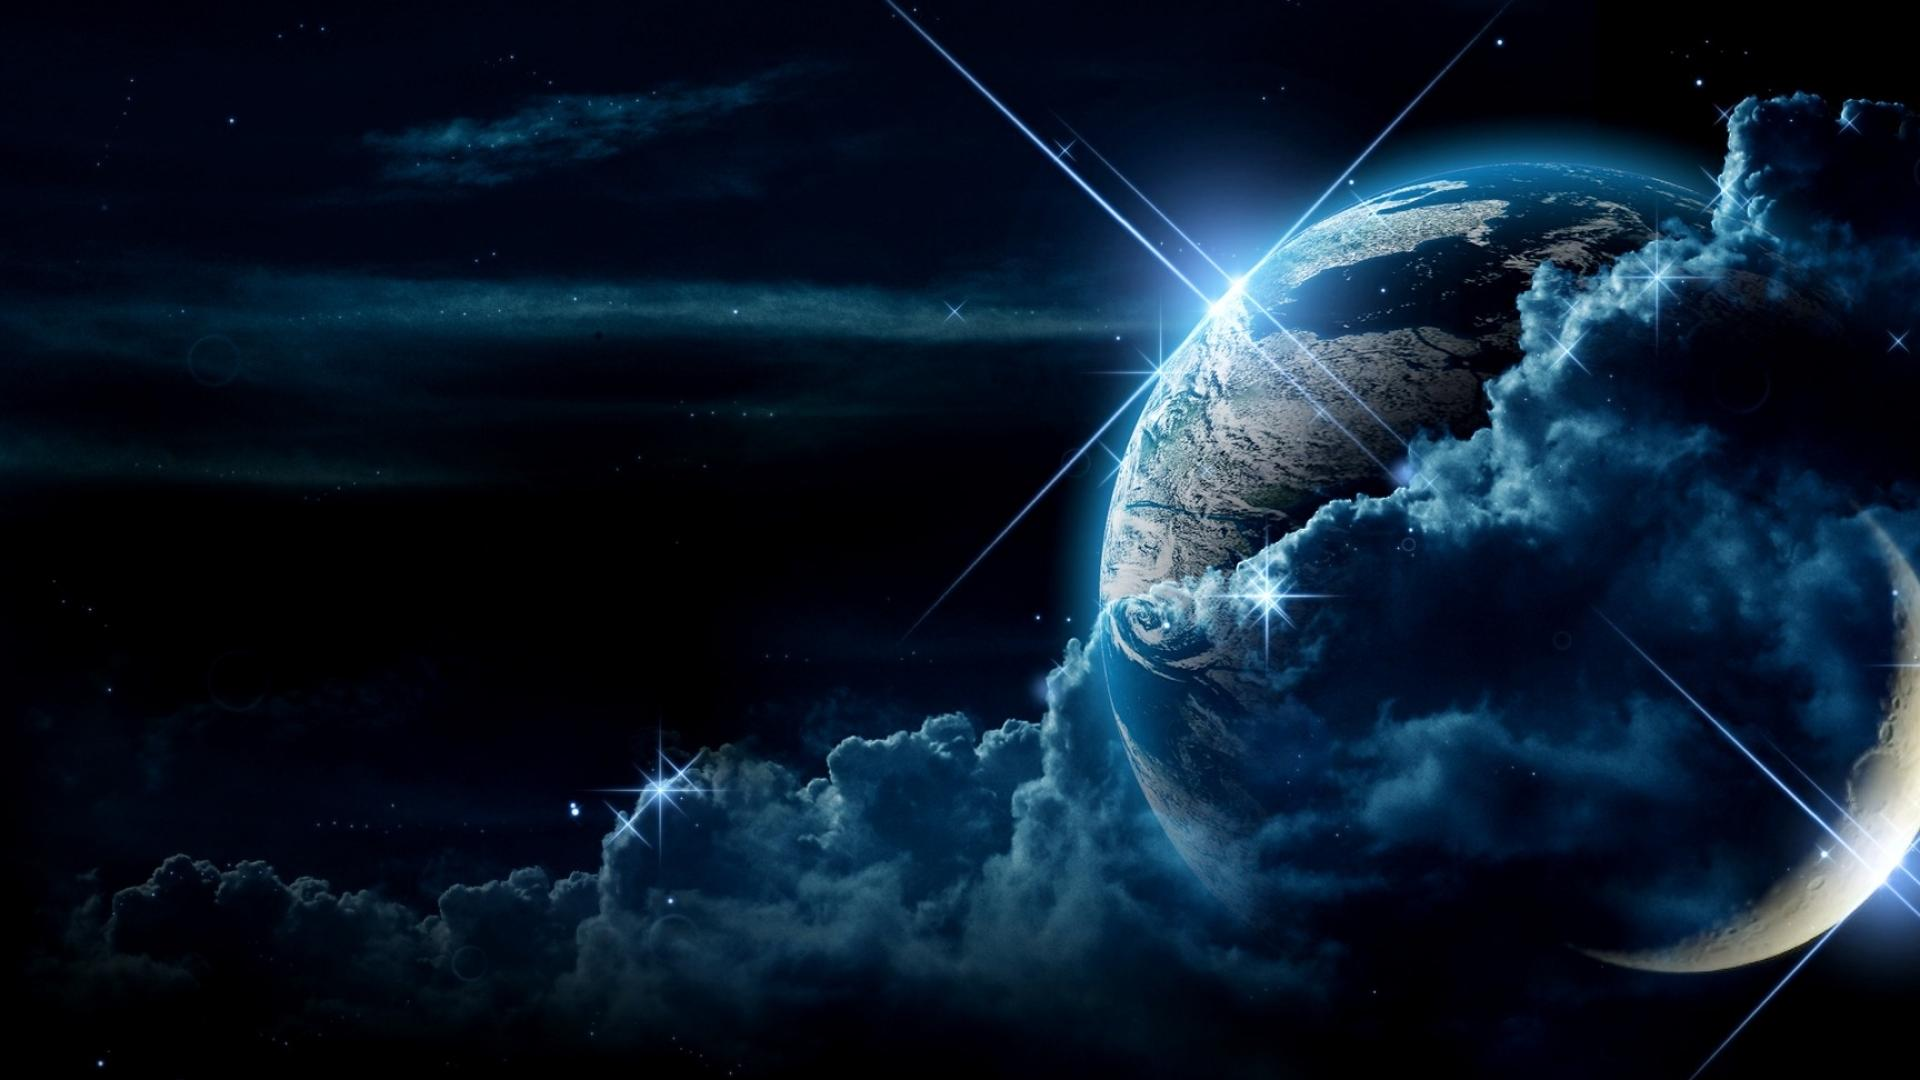 Earth Space Backgrounds - HD Wallpapers